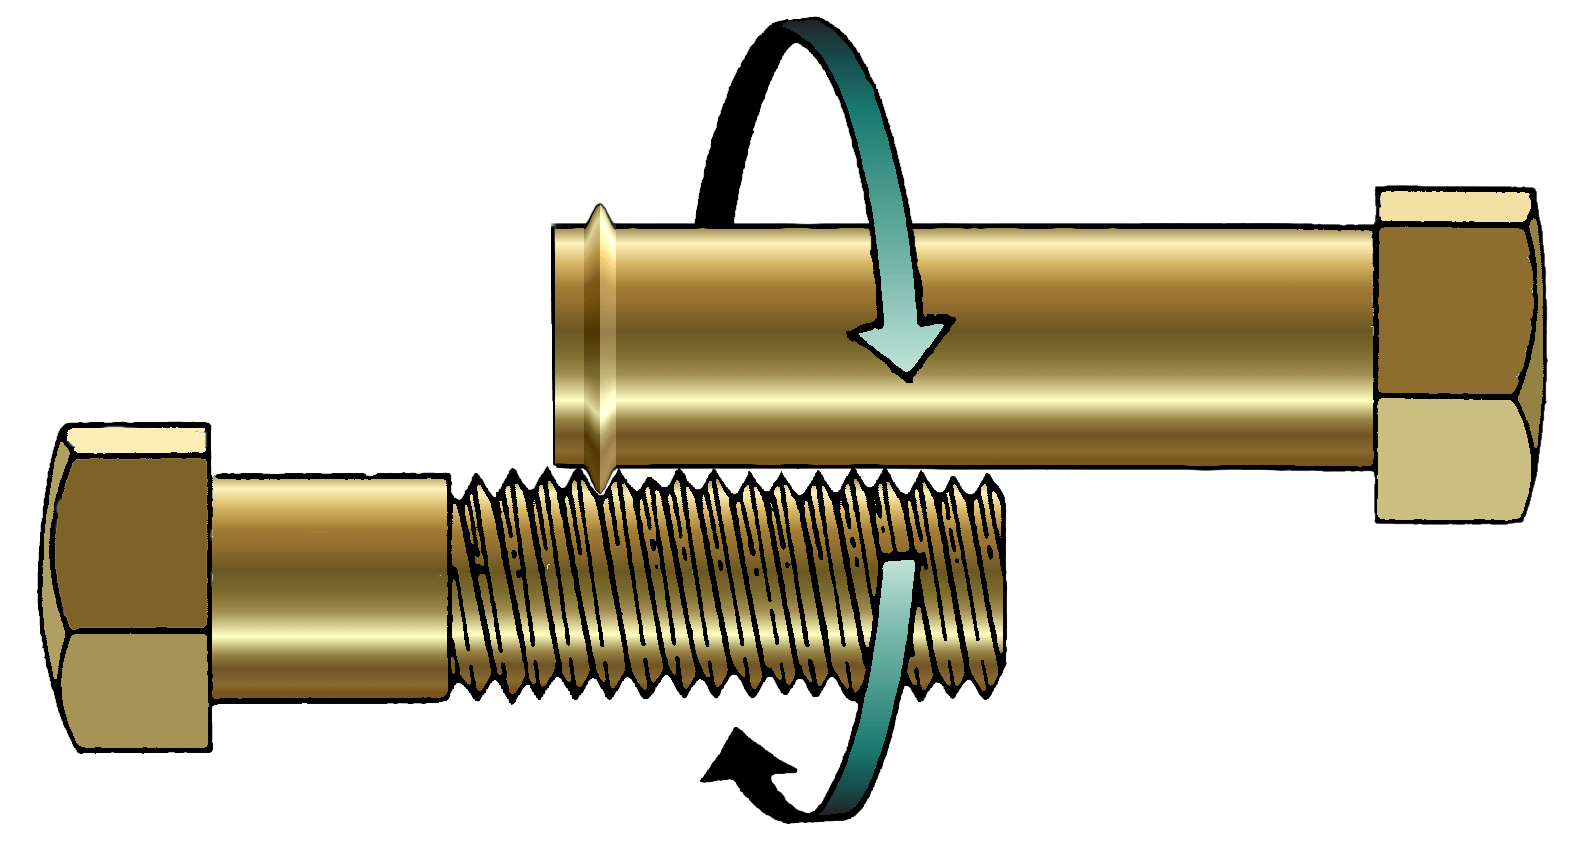 a special bolt with just a flange on the end interlocked with a regular bolt